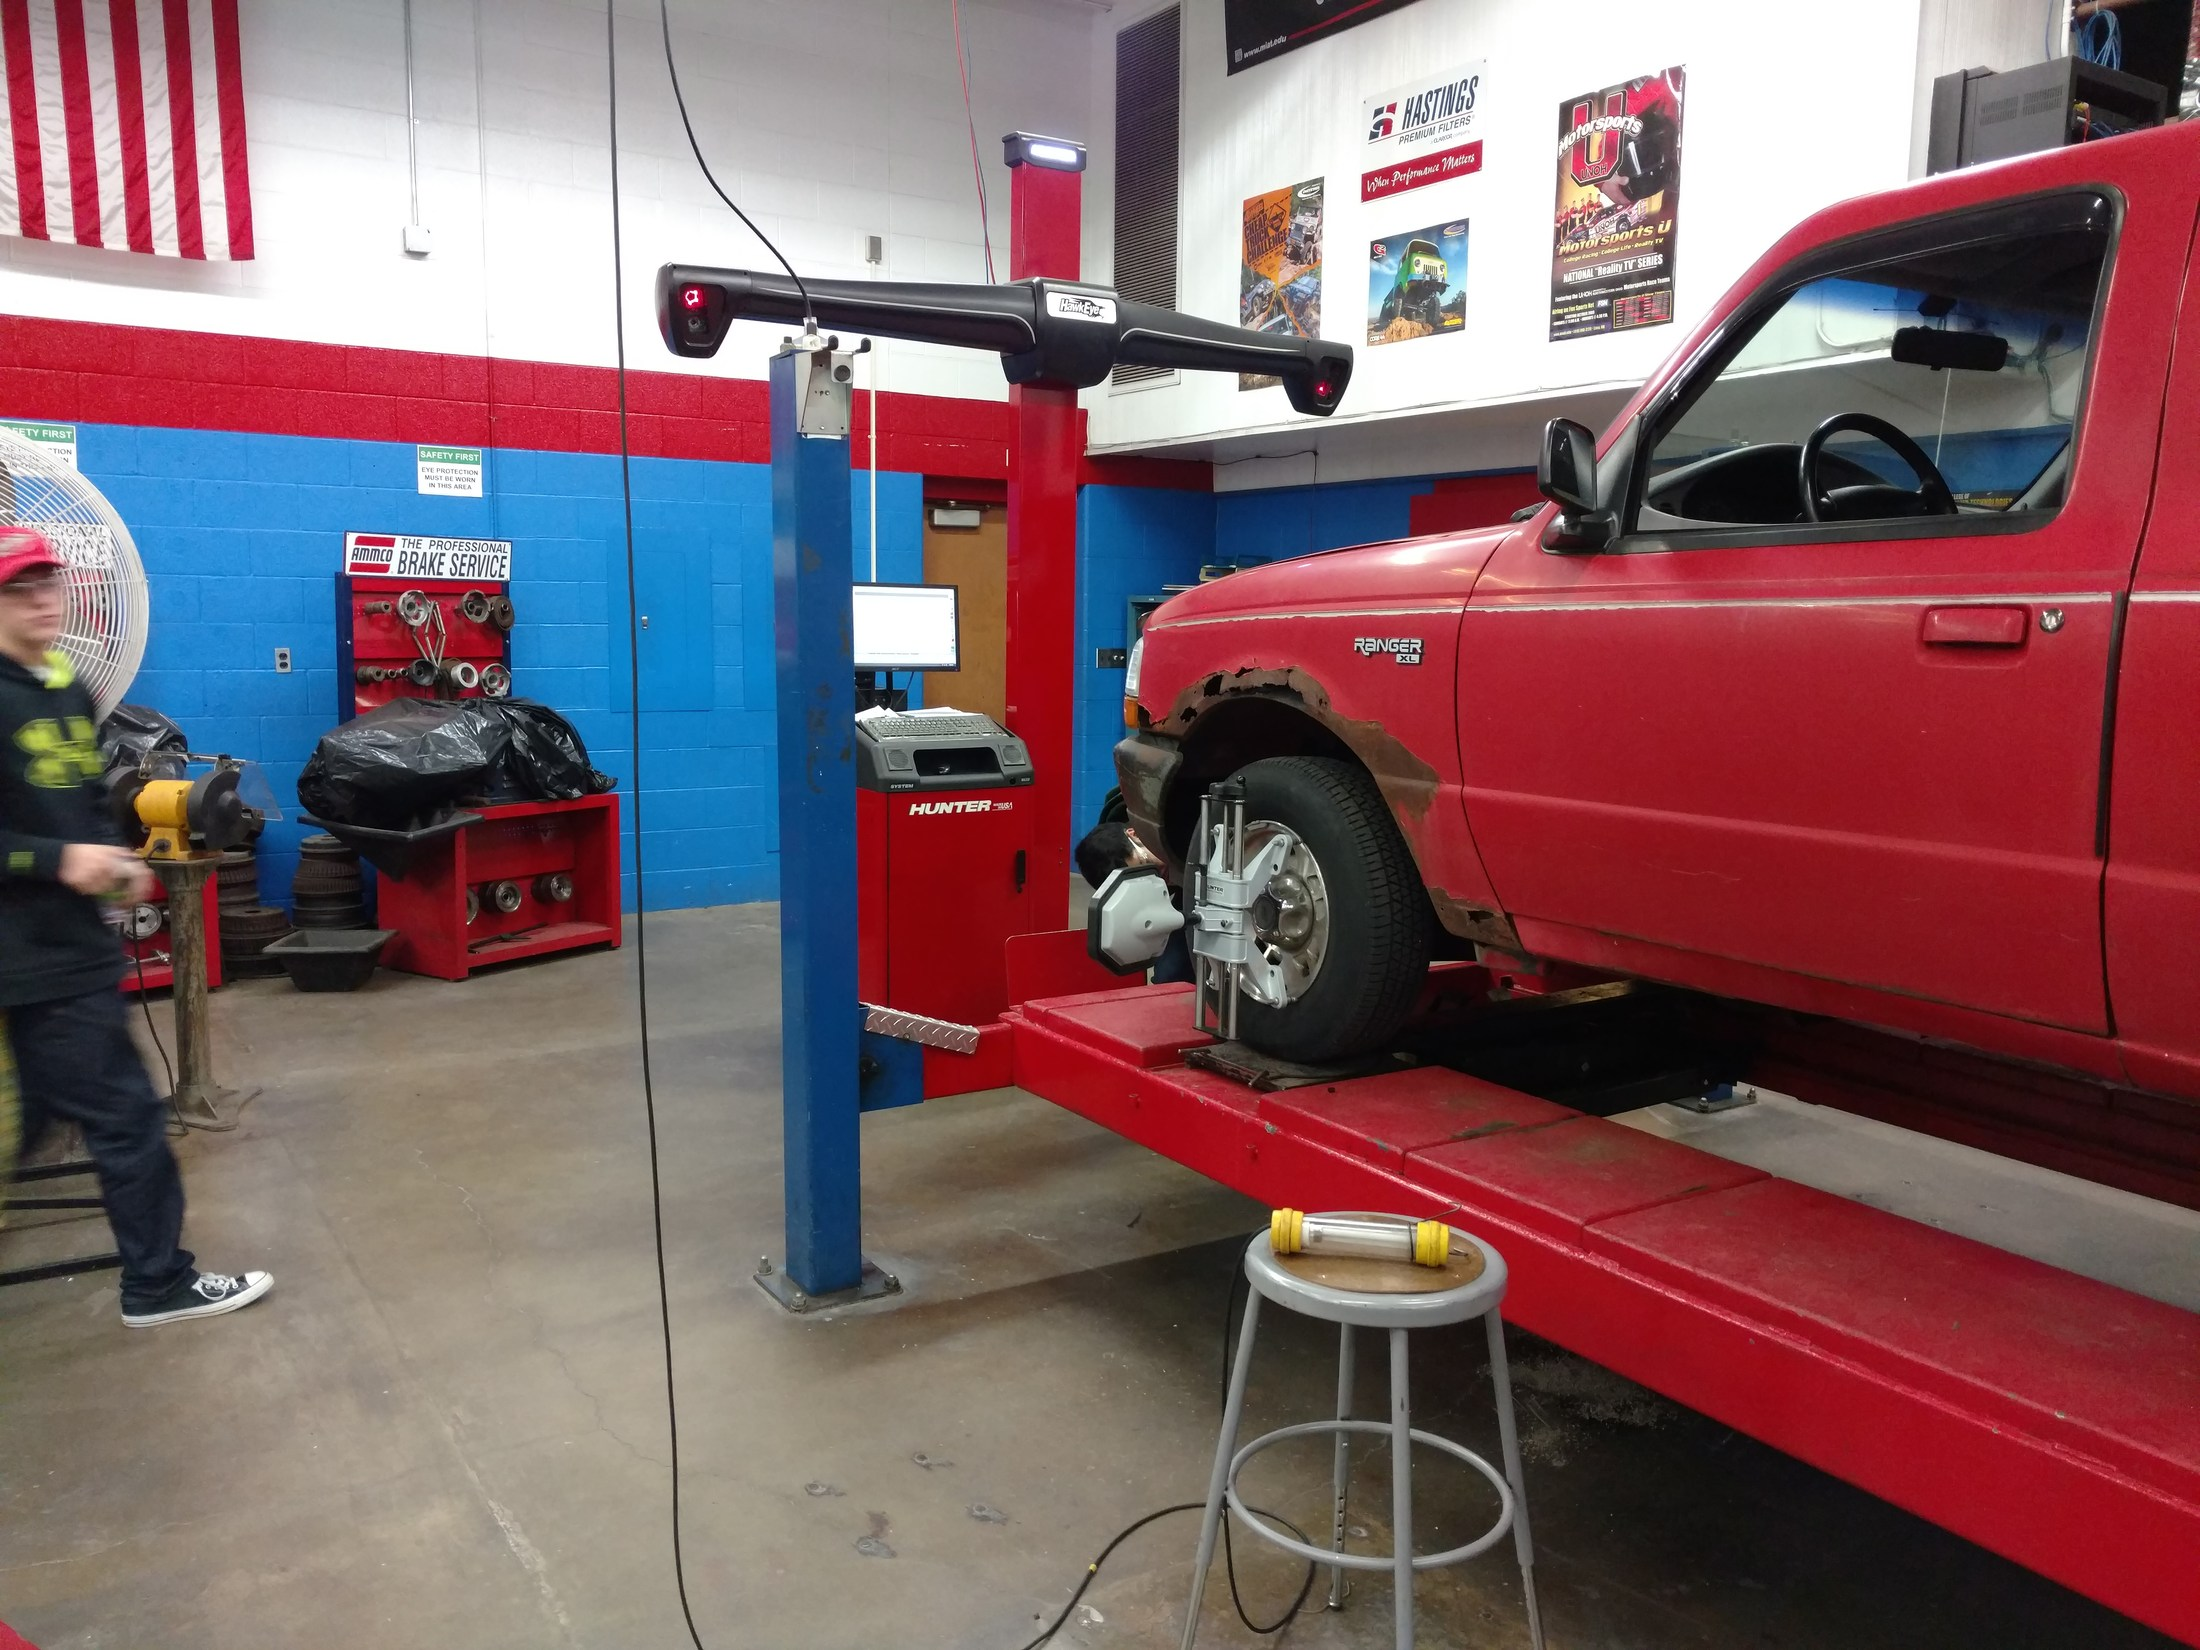 More Wheel Alignment fun on the Ranger